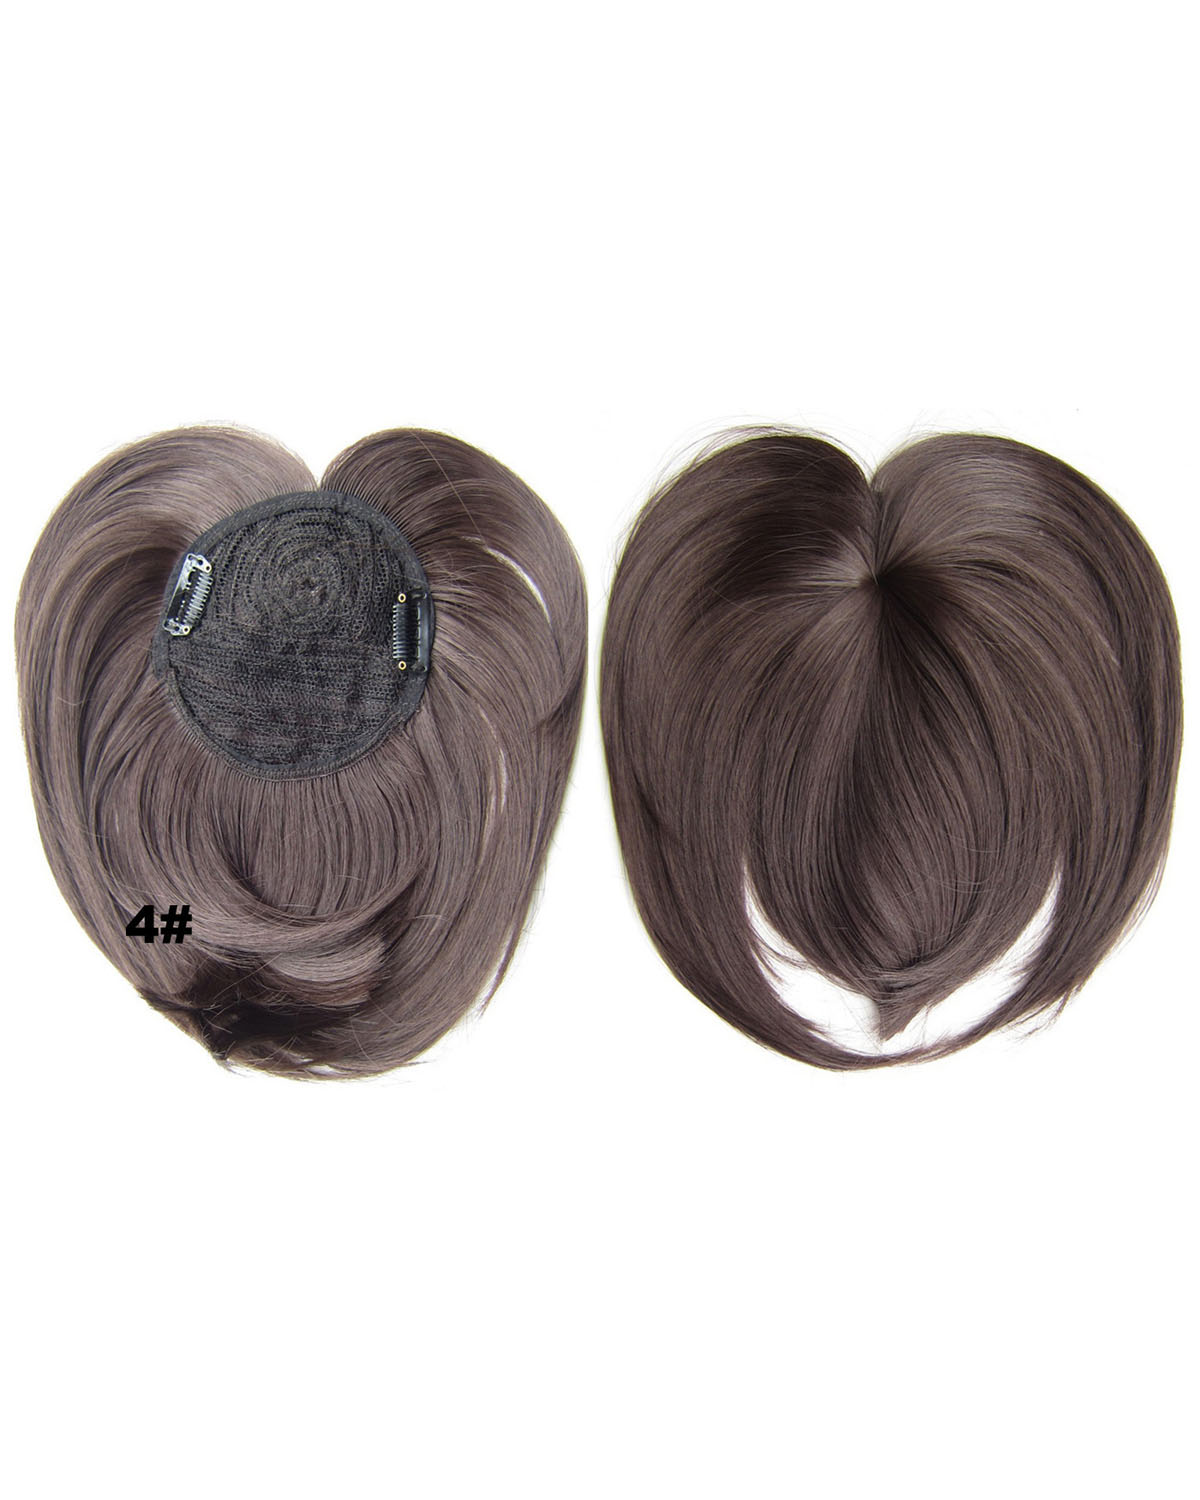 Girls Amazing Straight Short Bangs Clip in Synthetic Hair Extension Fringe Bangs Hairpiece 4#